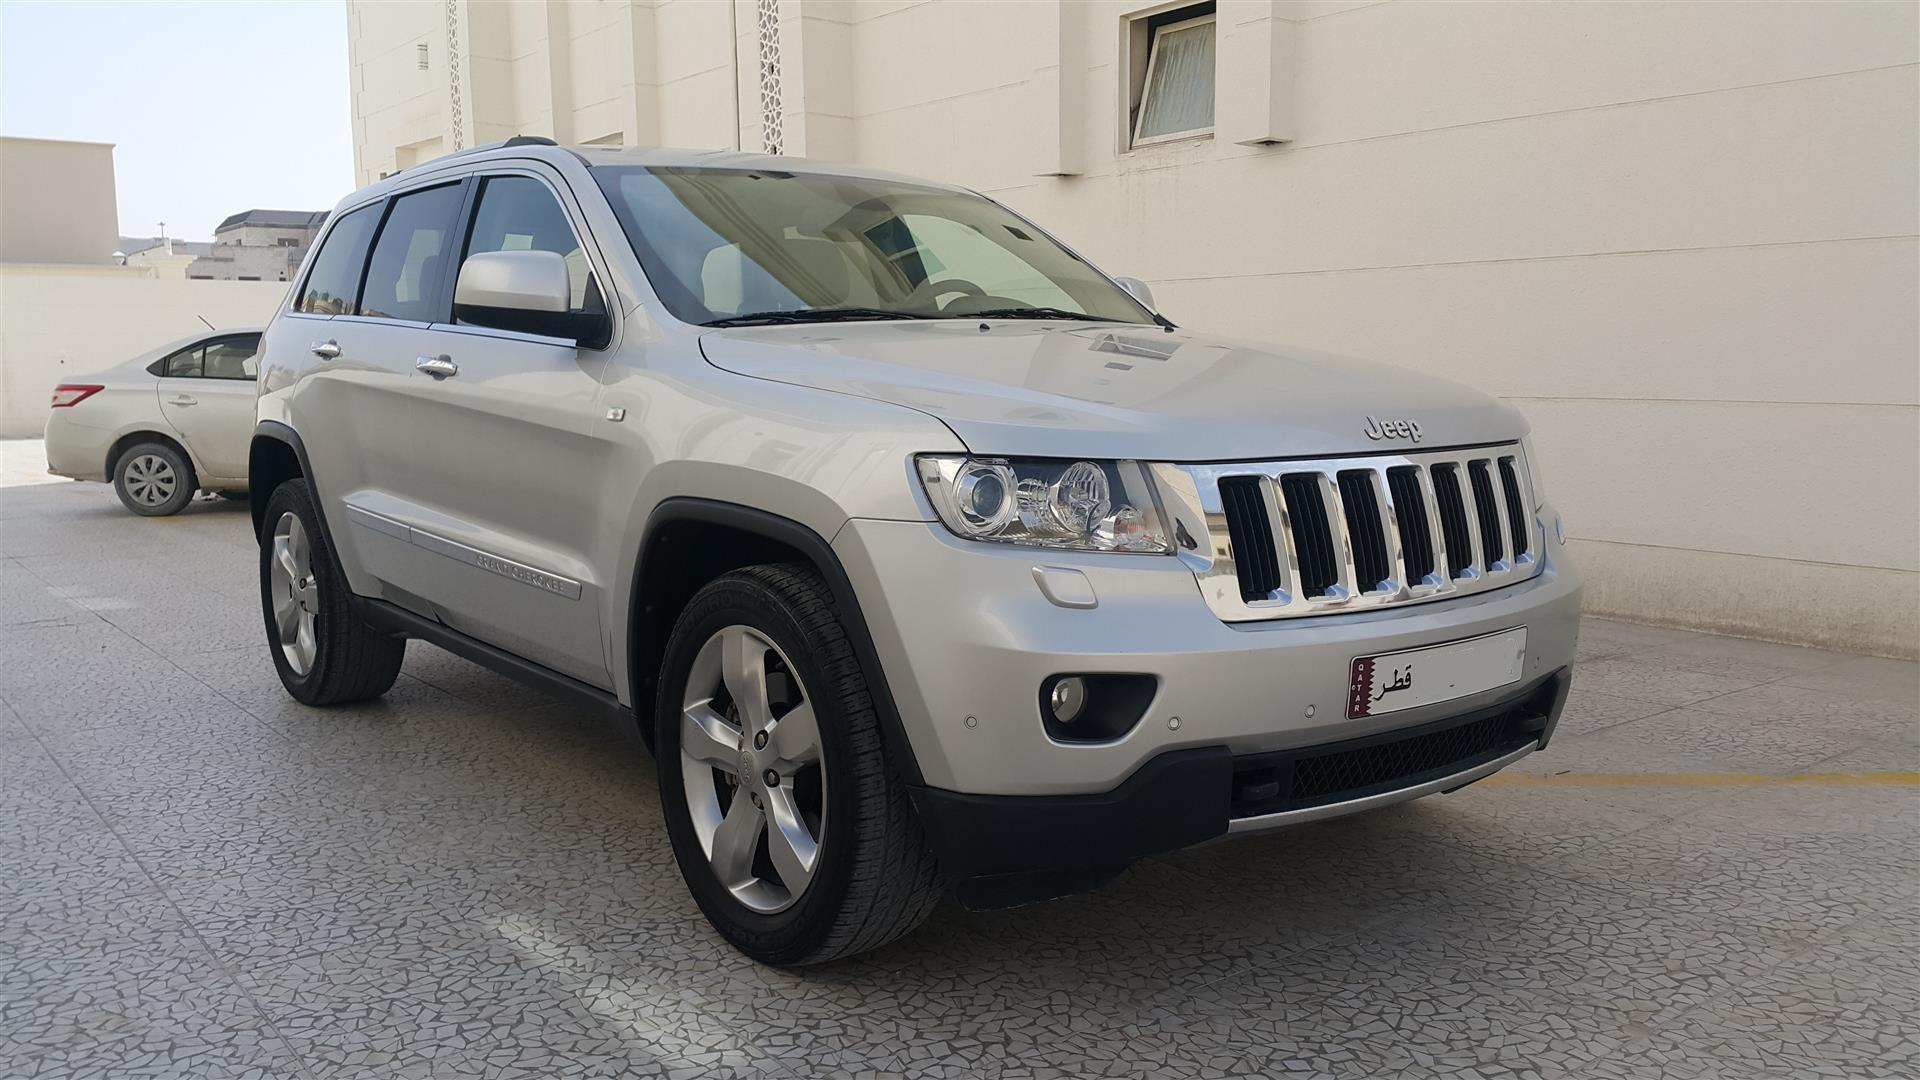 2013 Jeep Grand Cherokee (Limited) in brand new co